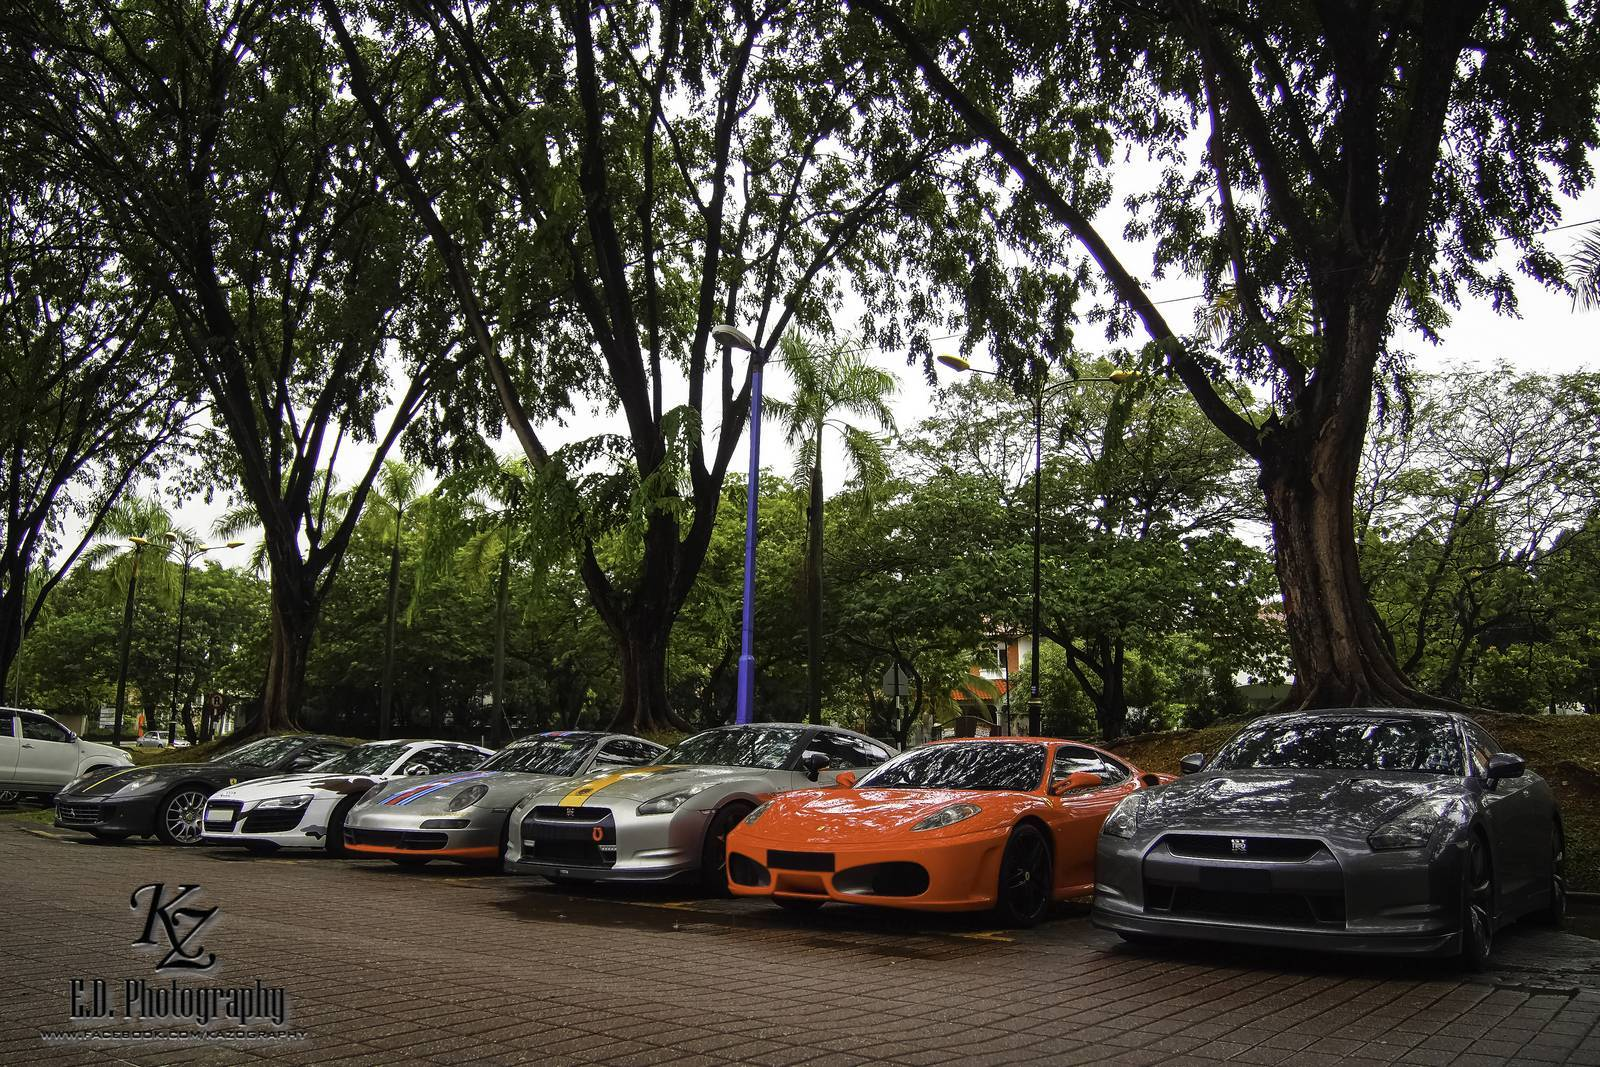 Gallery: Blue Jackets Society Supercar Charity Drive Malaysia ...